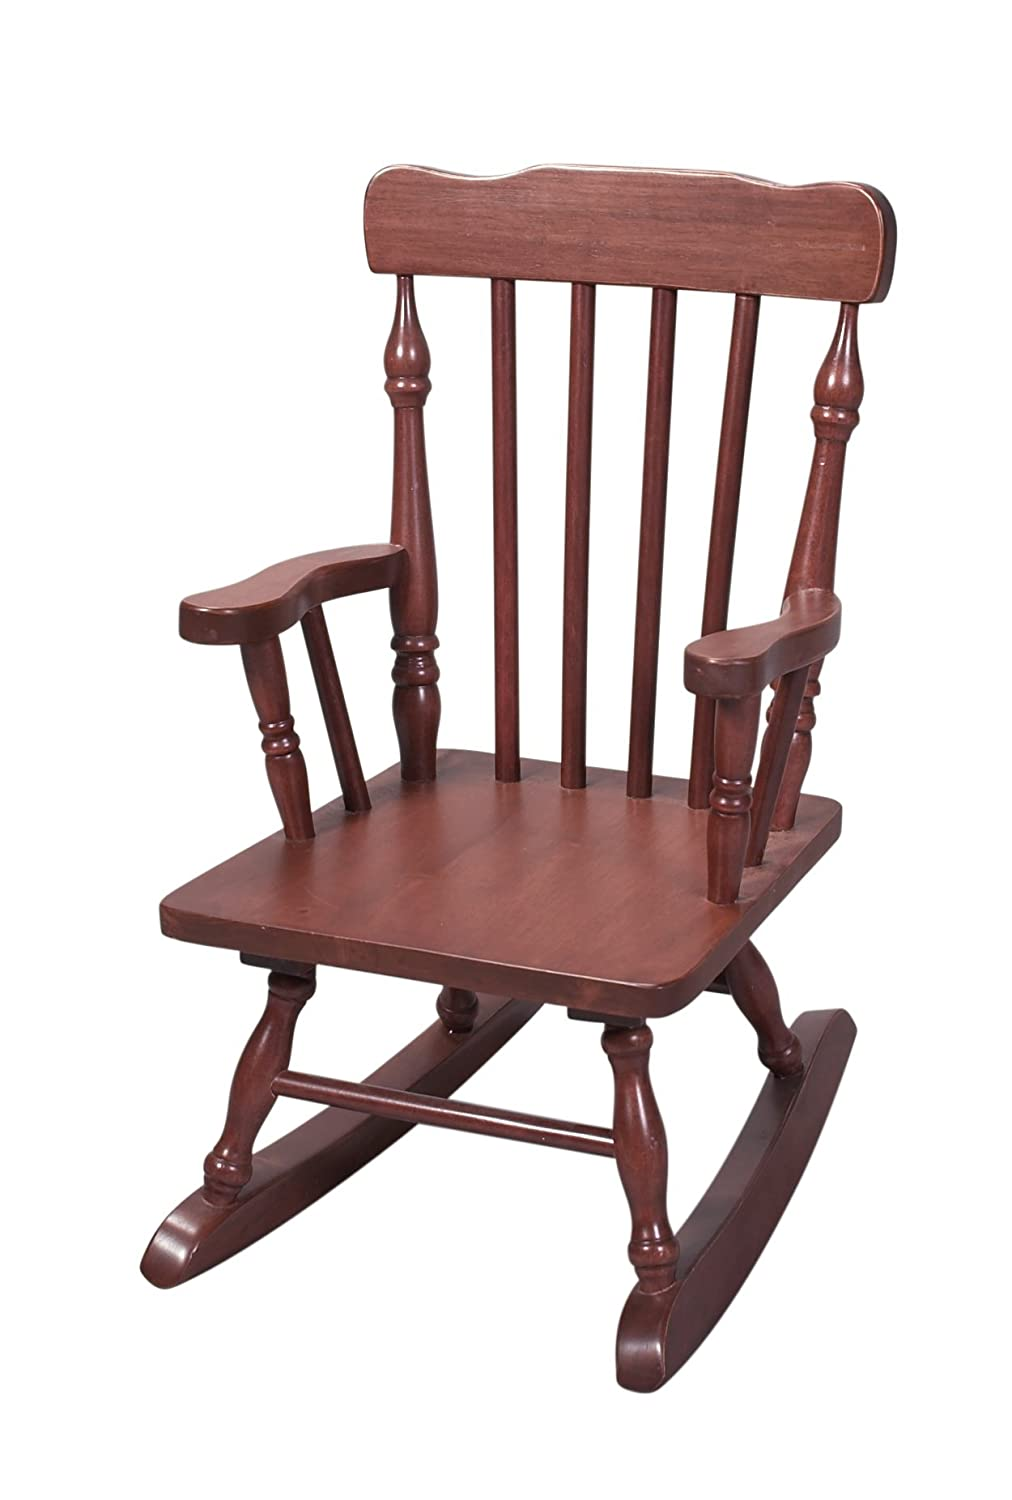 Amazon.com: Gift Mark Child's Colonial Rocking Chair, Cherry: Kitchen &  Dining - Amazon.com: Gift Mark Child's Colonial Rocking Chair, Cherry